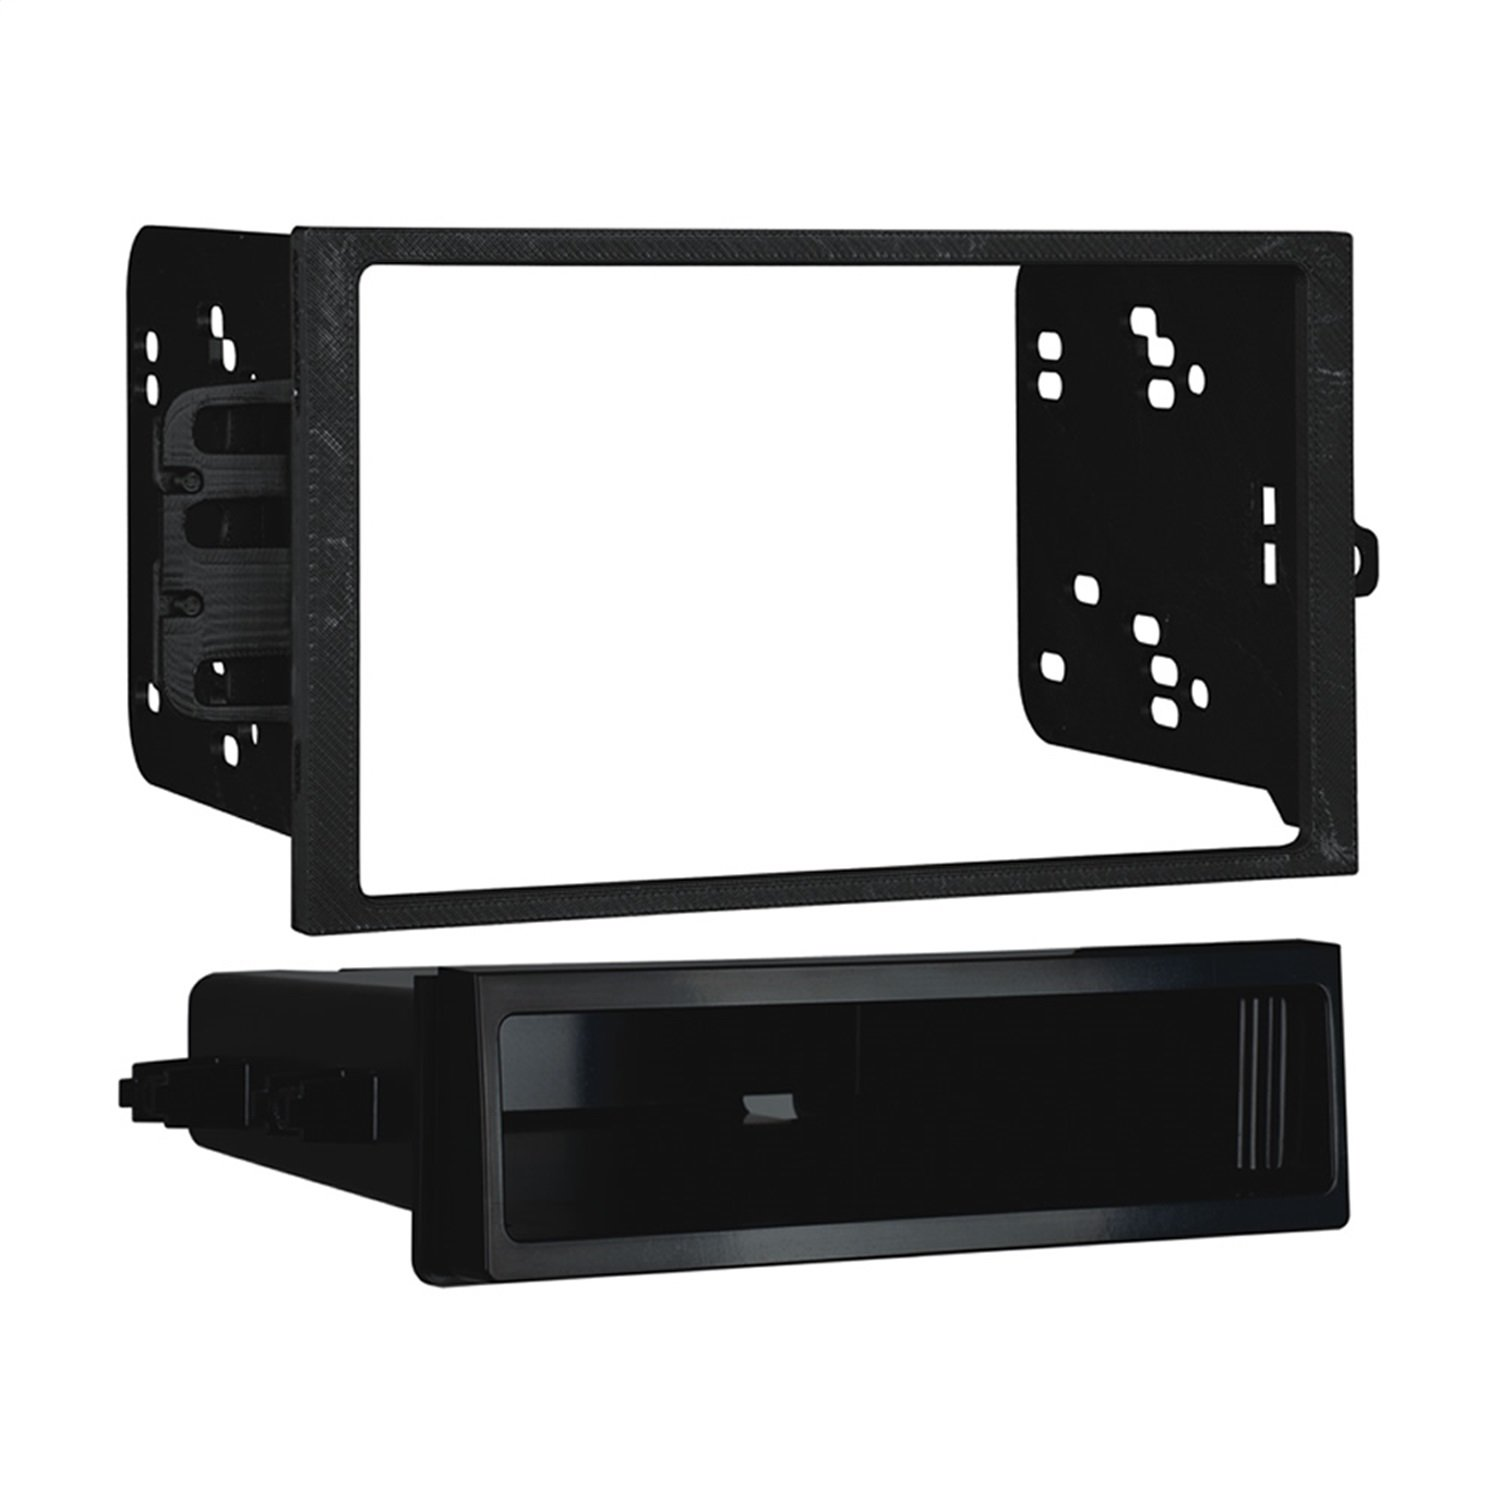 Metra 99-2001 Dash Kit For GM Multiw Eq 94-Up